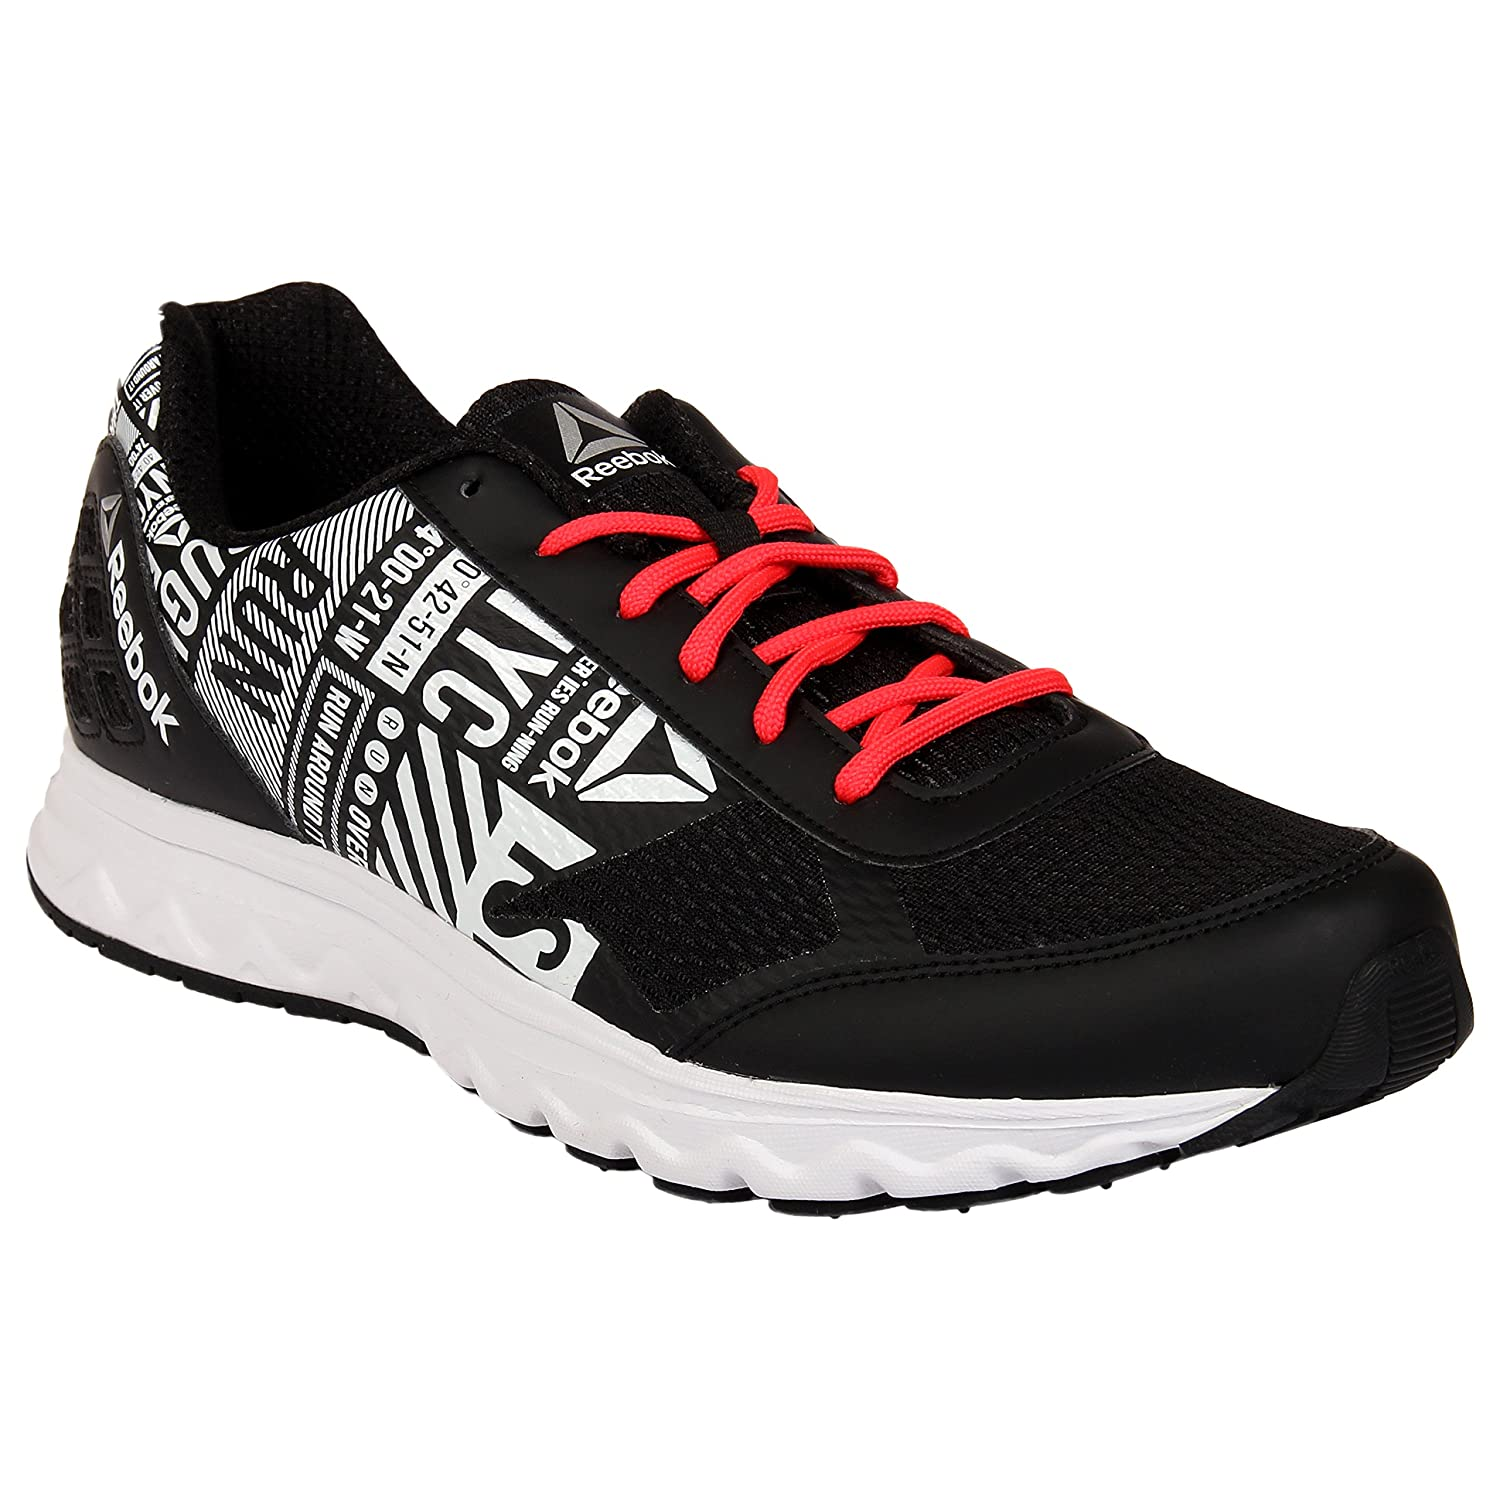 Reebok Run Voyager LP Black Running Shoes  Amazon.in  Shoes   Handbags 6f5643752